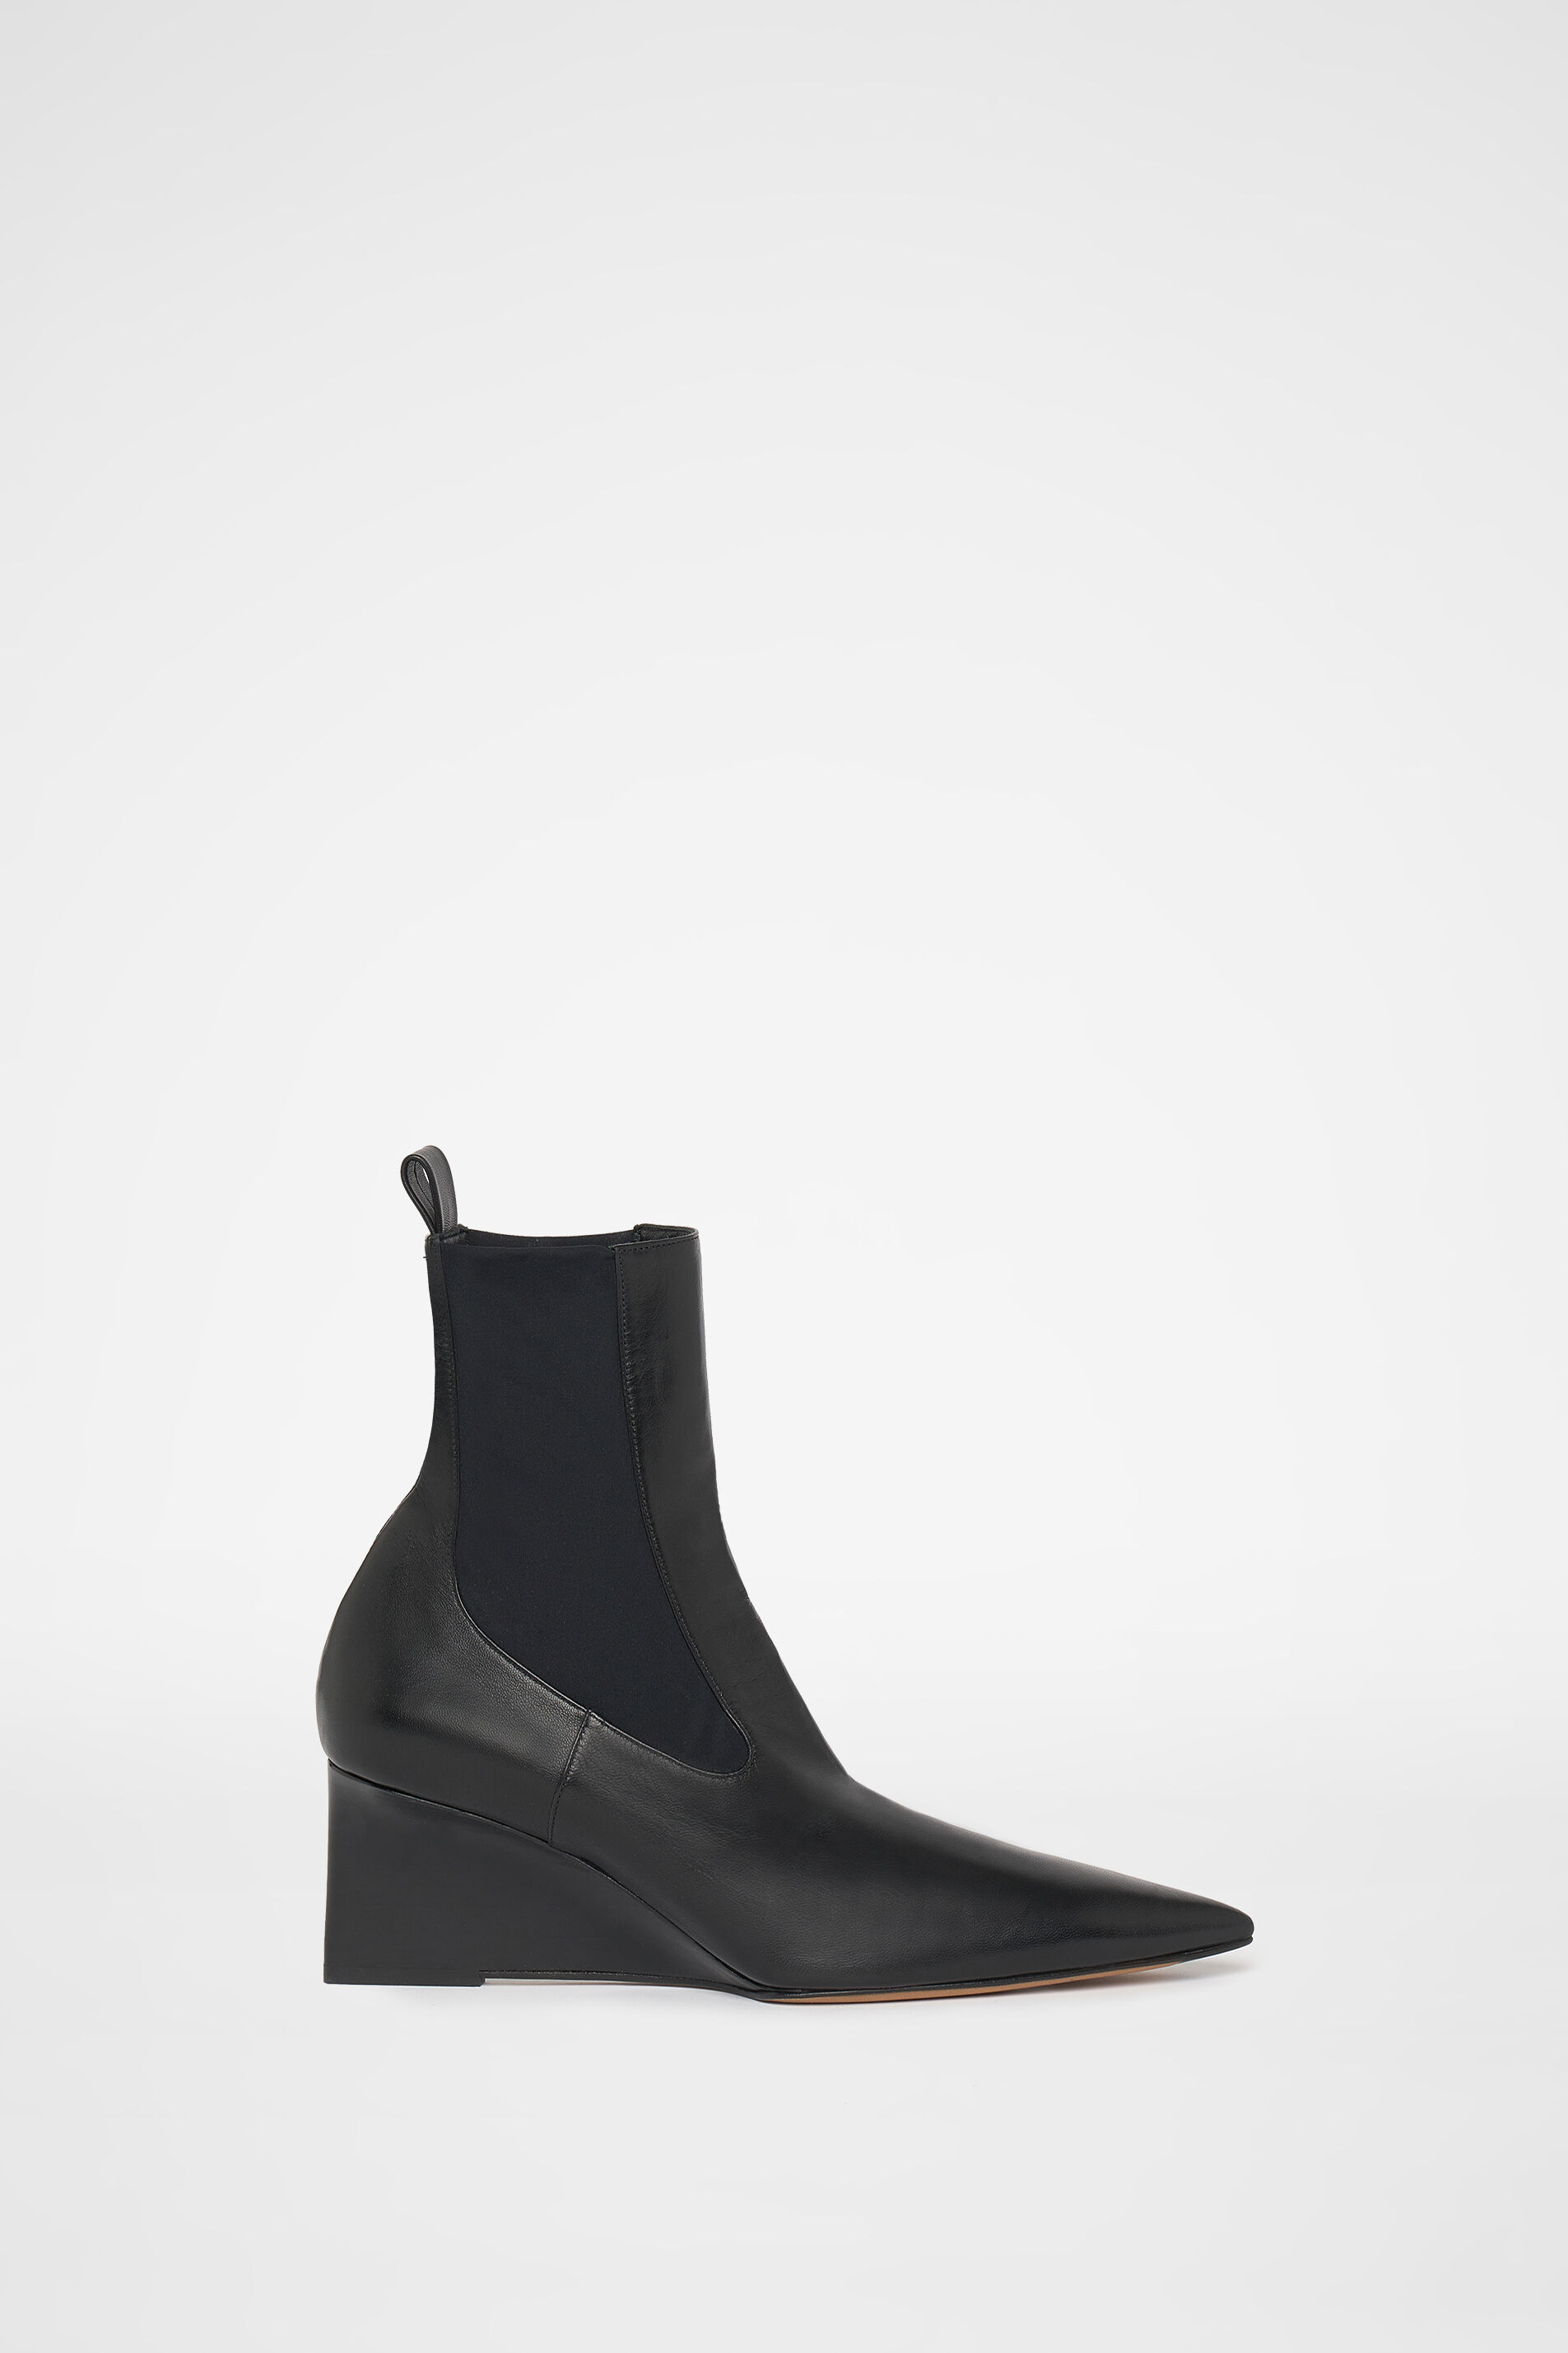 Ankle Boot, black, large